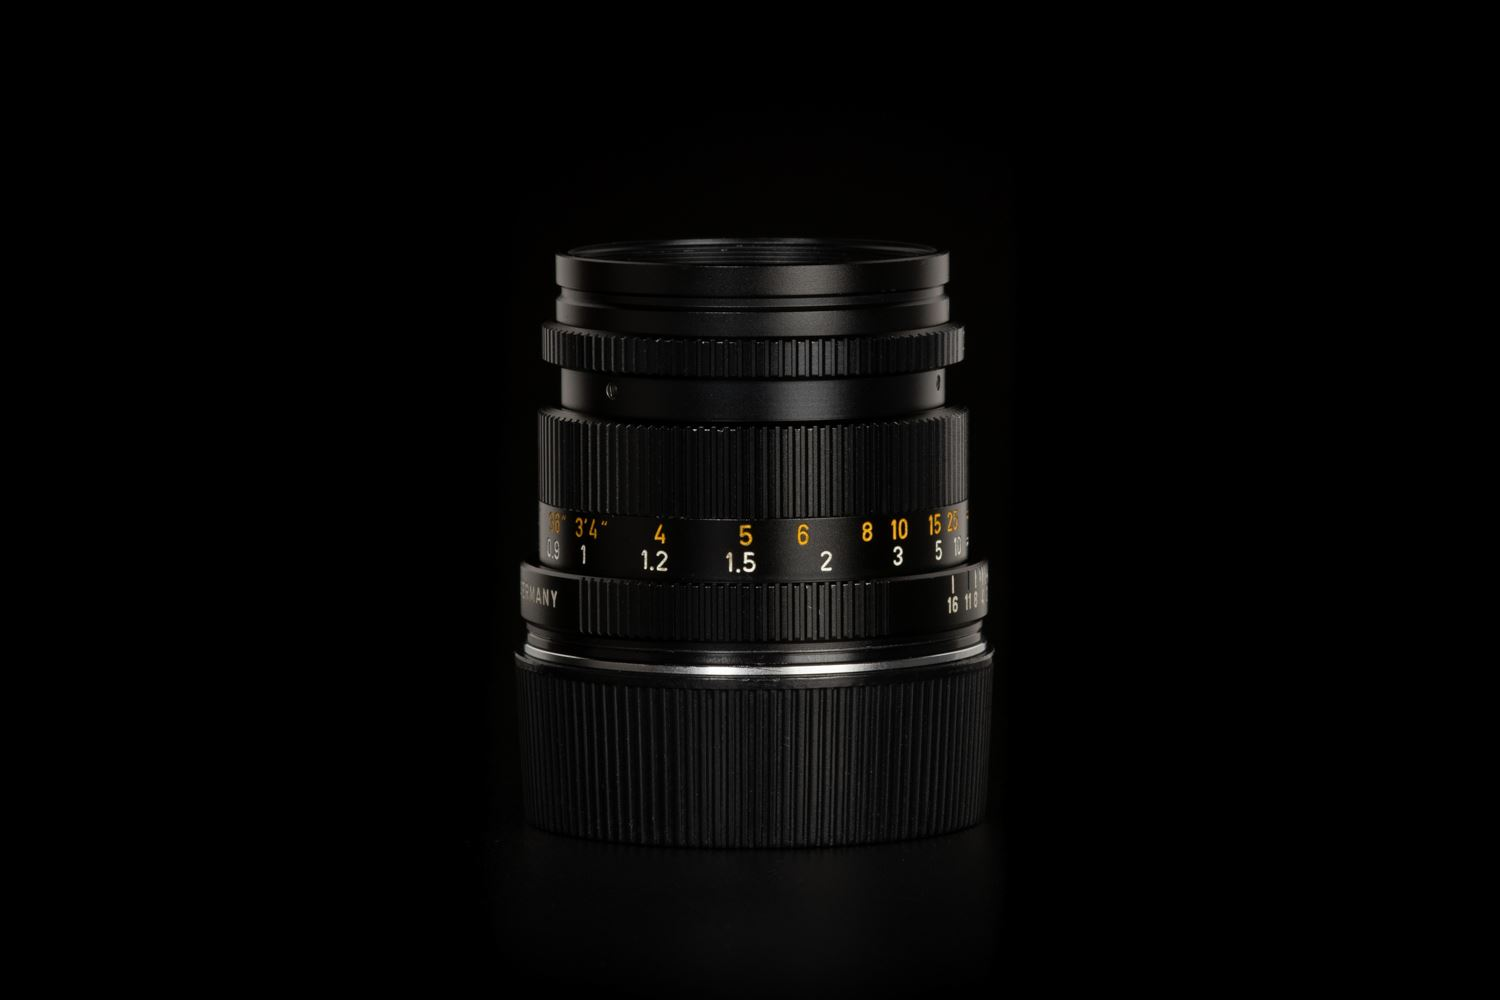 Leica 50mm summicron review